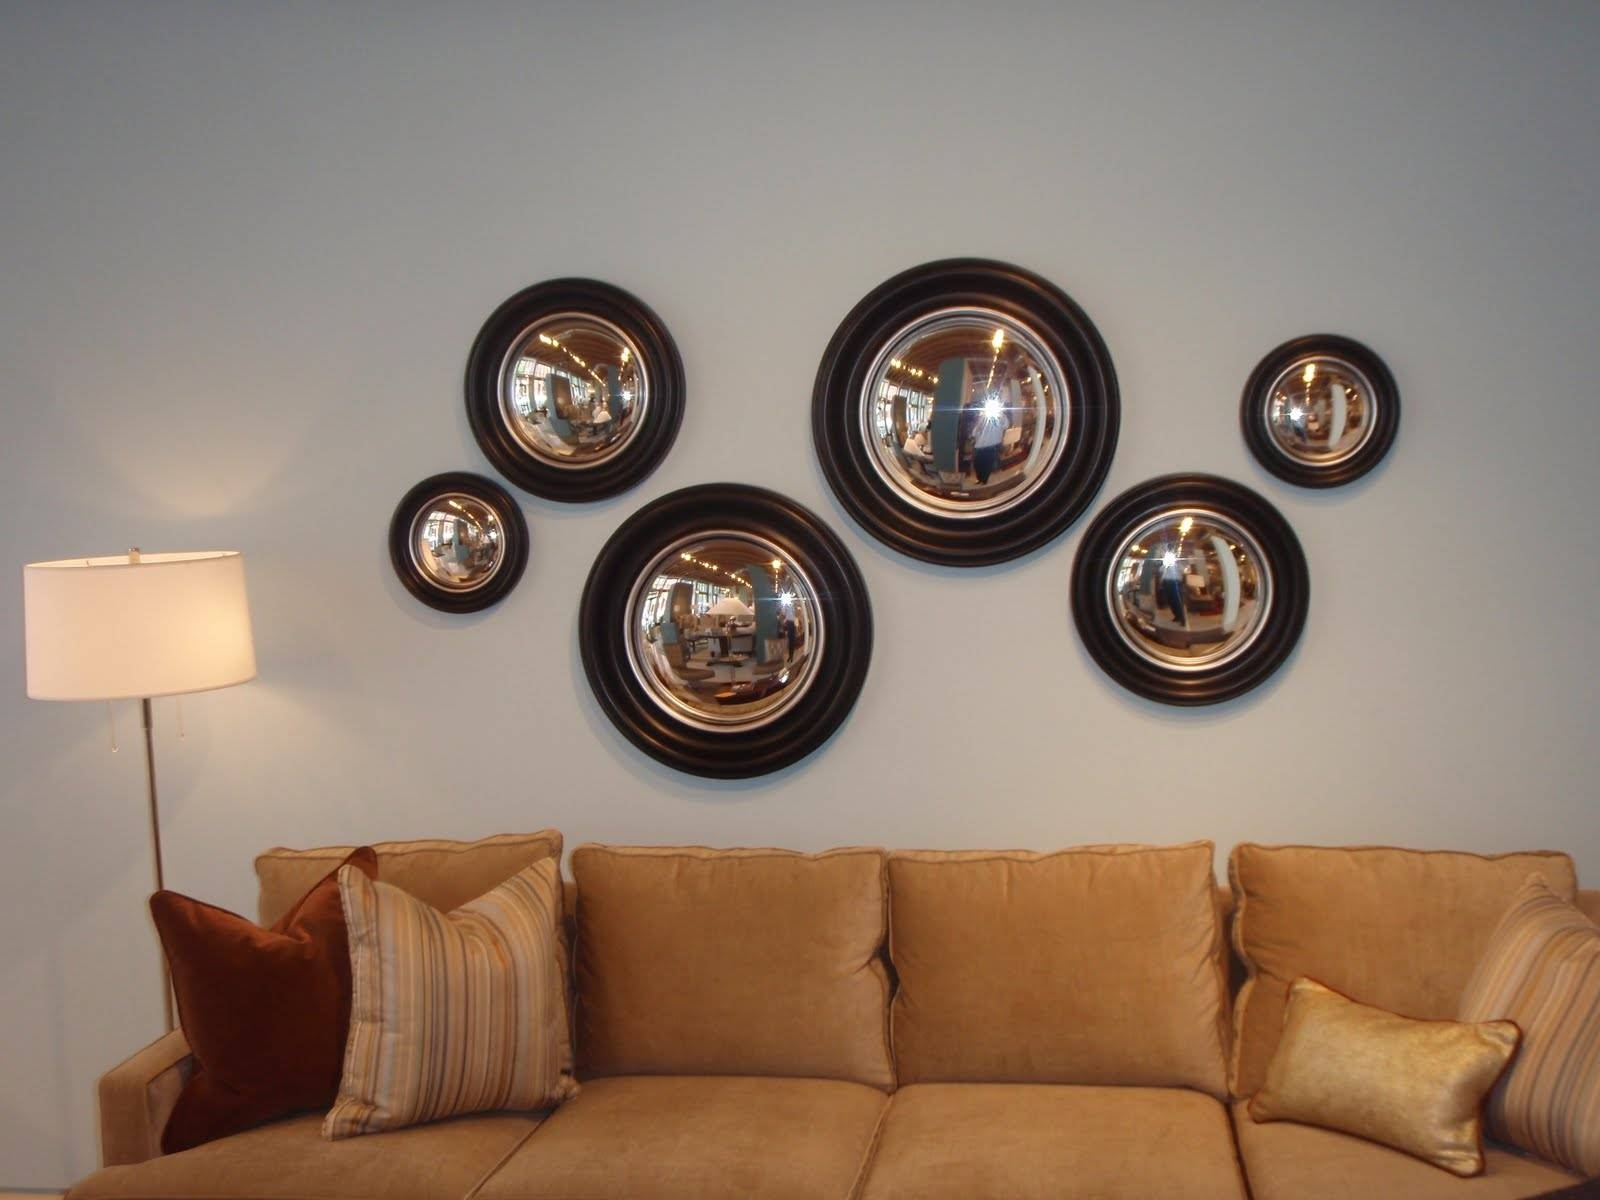 Decorative Convex Mirror Photos inside Convex Decorative Mirrors (Image 2 of 15)